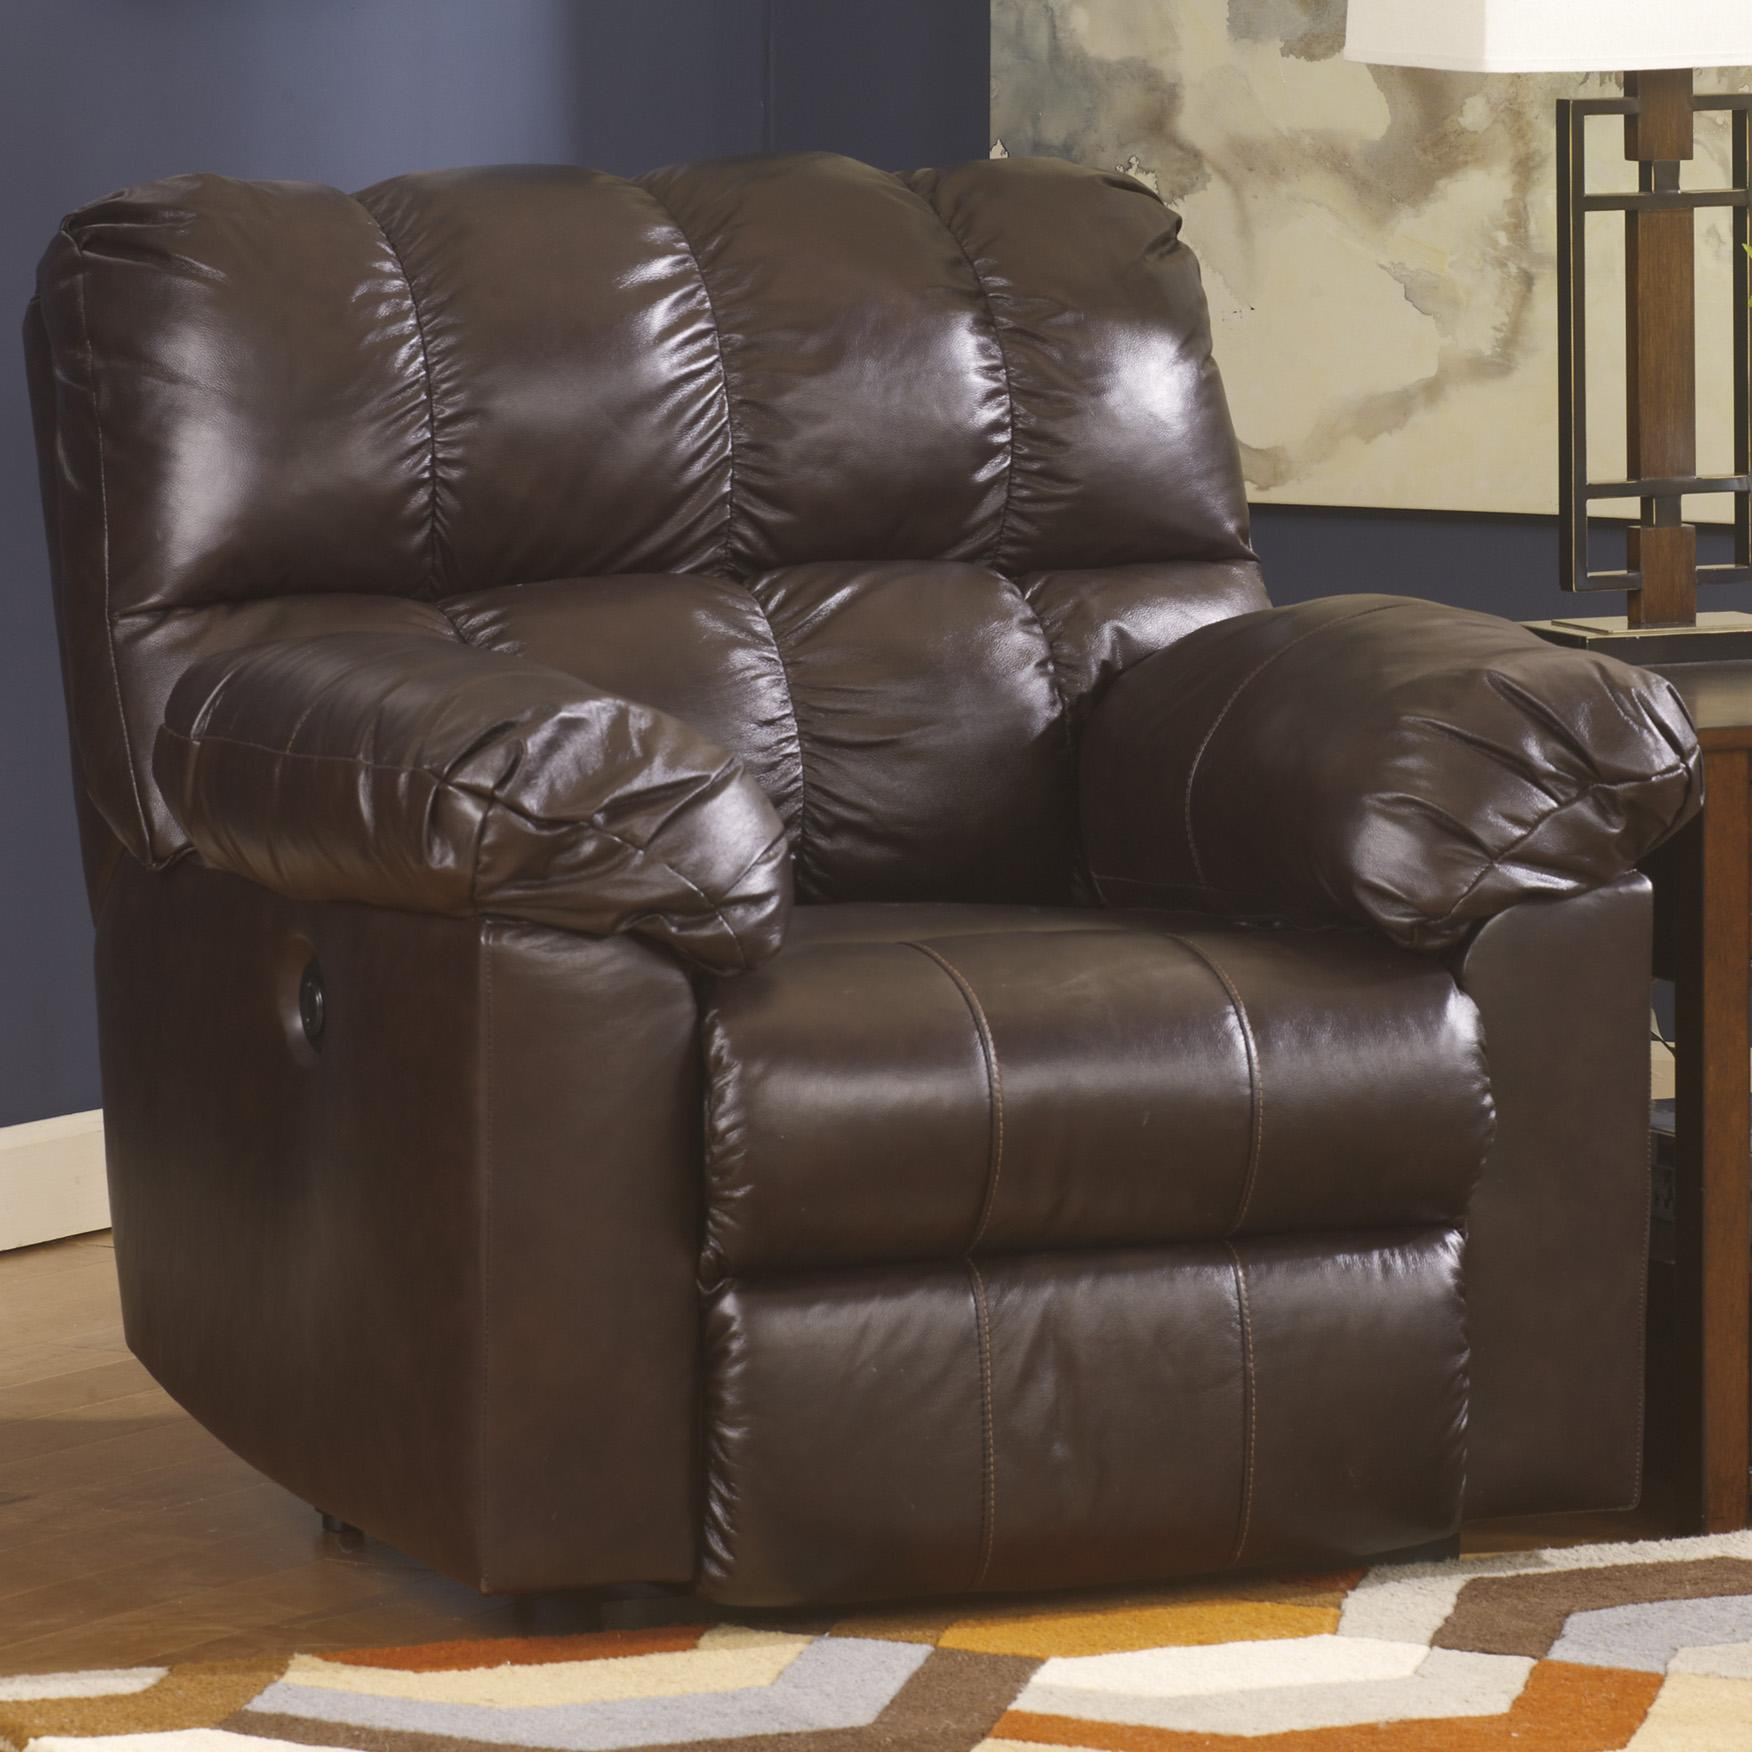 Signature Design by Ashley Kennard - Chocolate Power Rocker Recliner - Item Number: 2900198